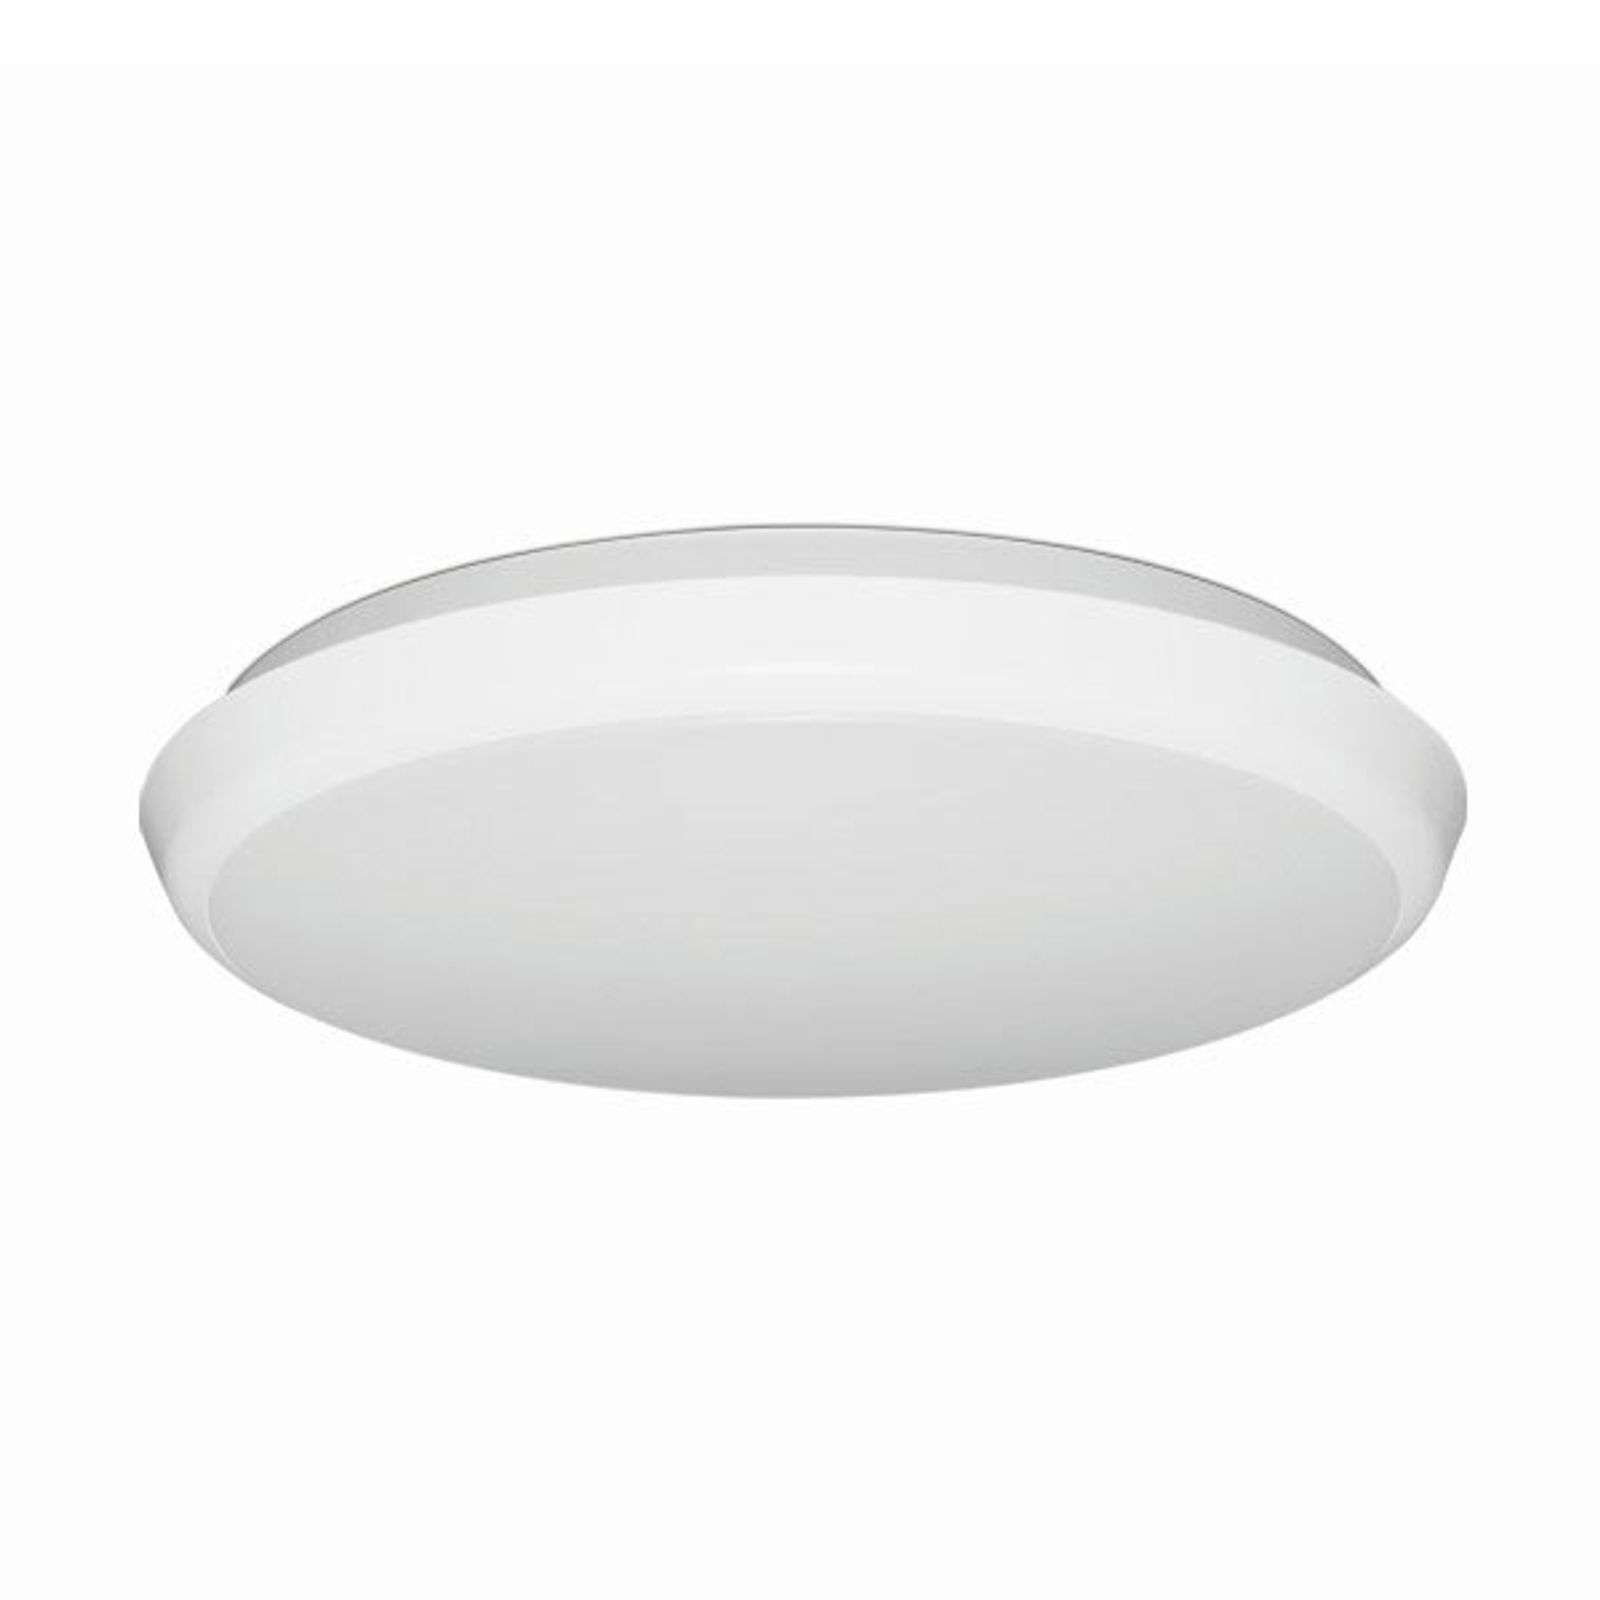 Plafonnier LED Zirra dimmable à capteur, IP54